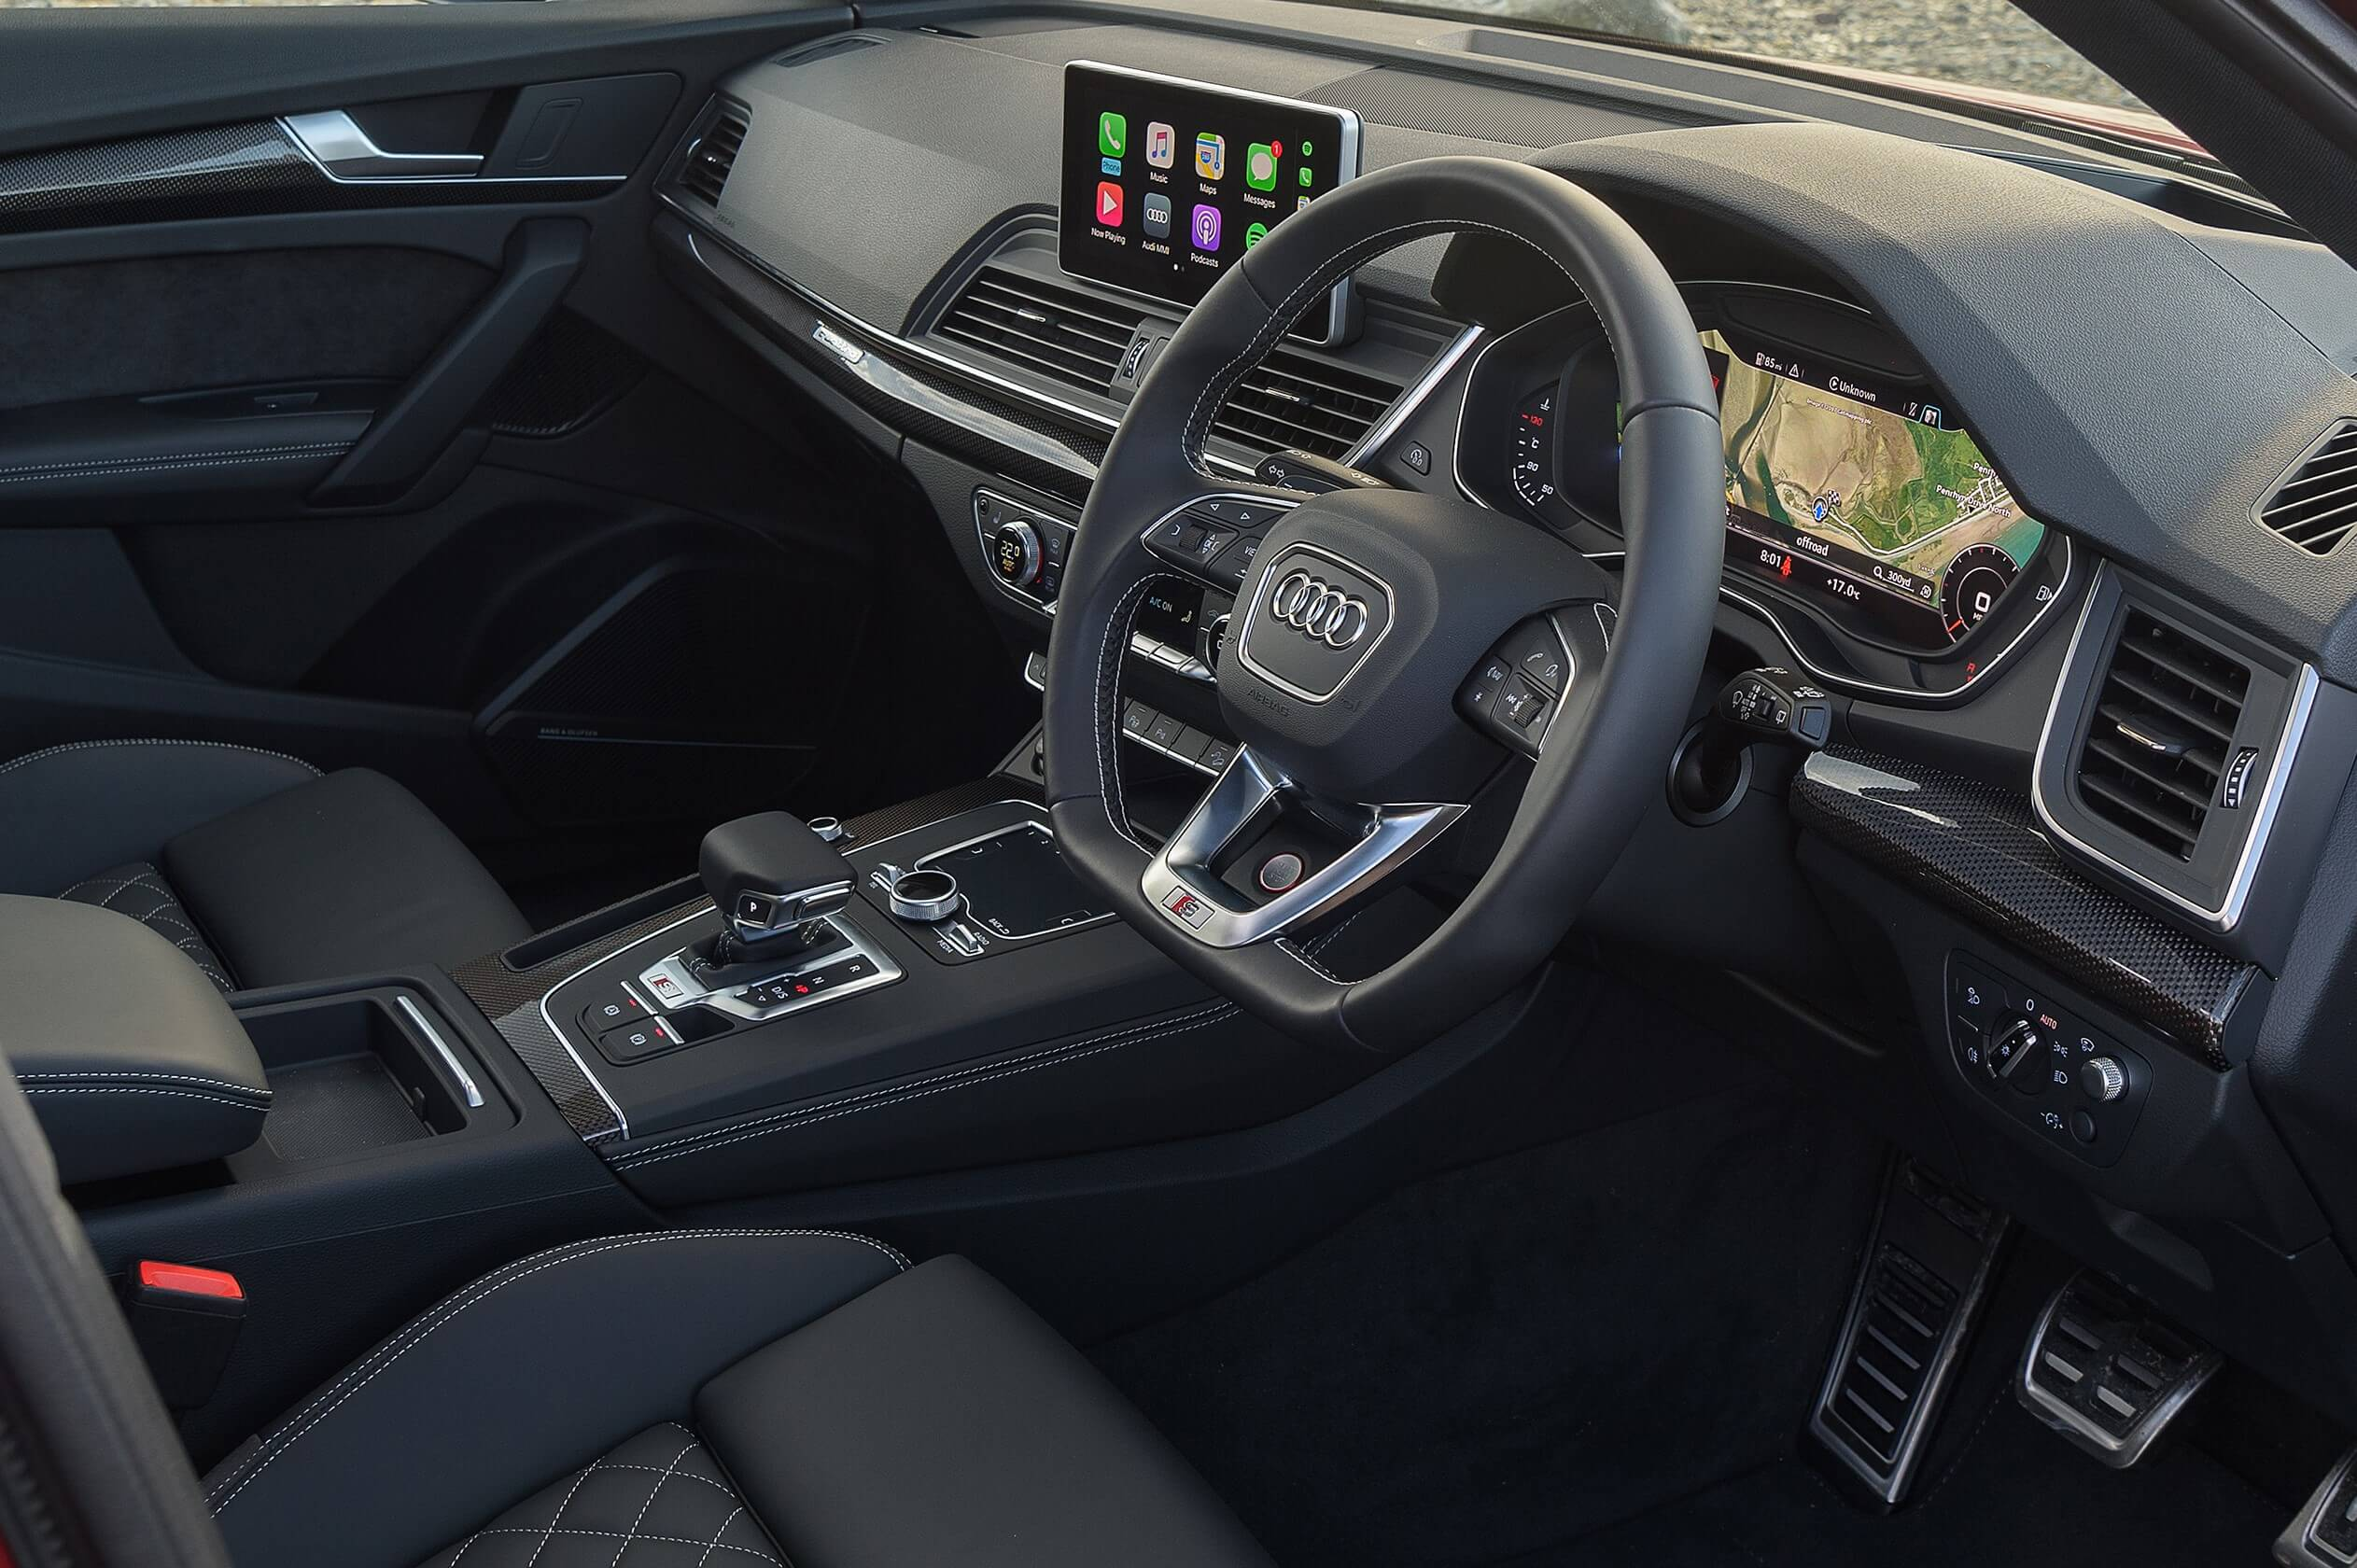 AUDI Q7 2015-2018 (Typ 80A/B9) Retrofit CarPlay and Android Auto Kit